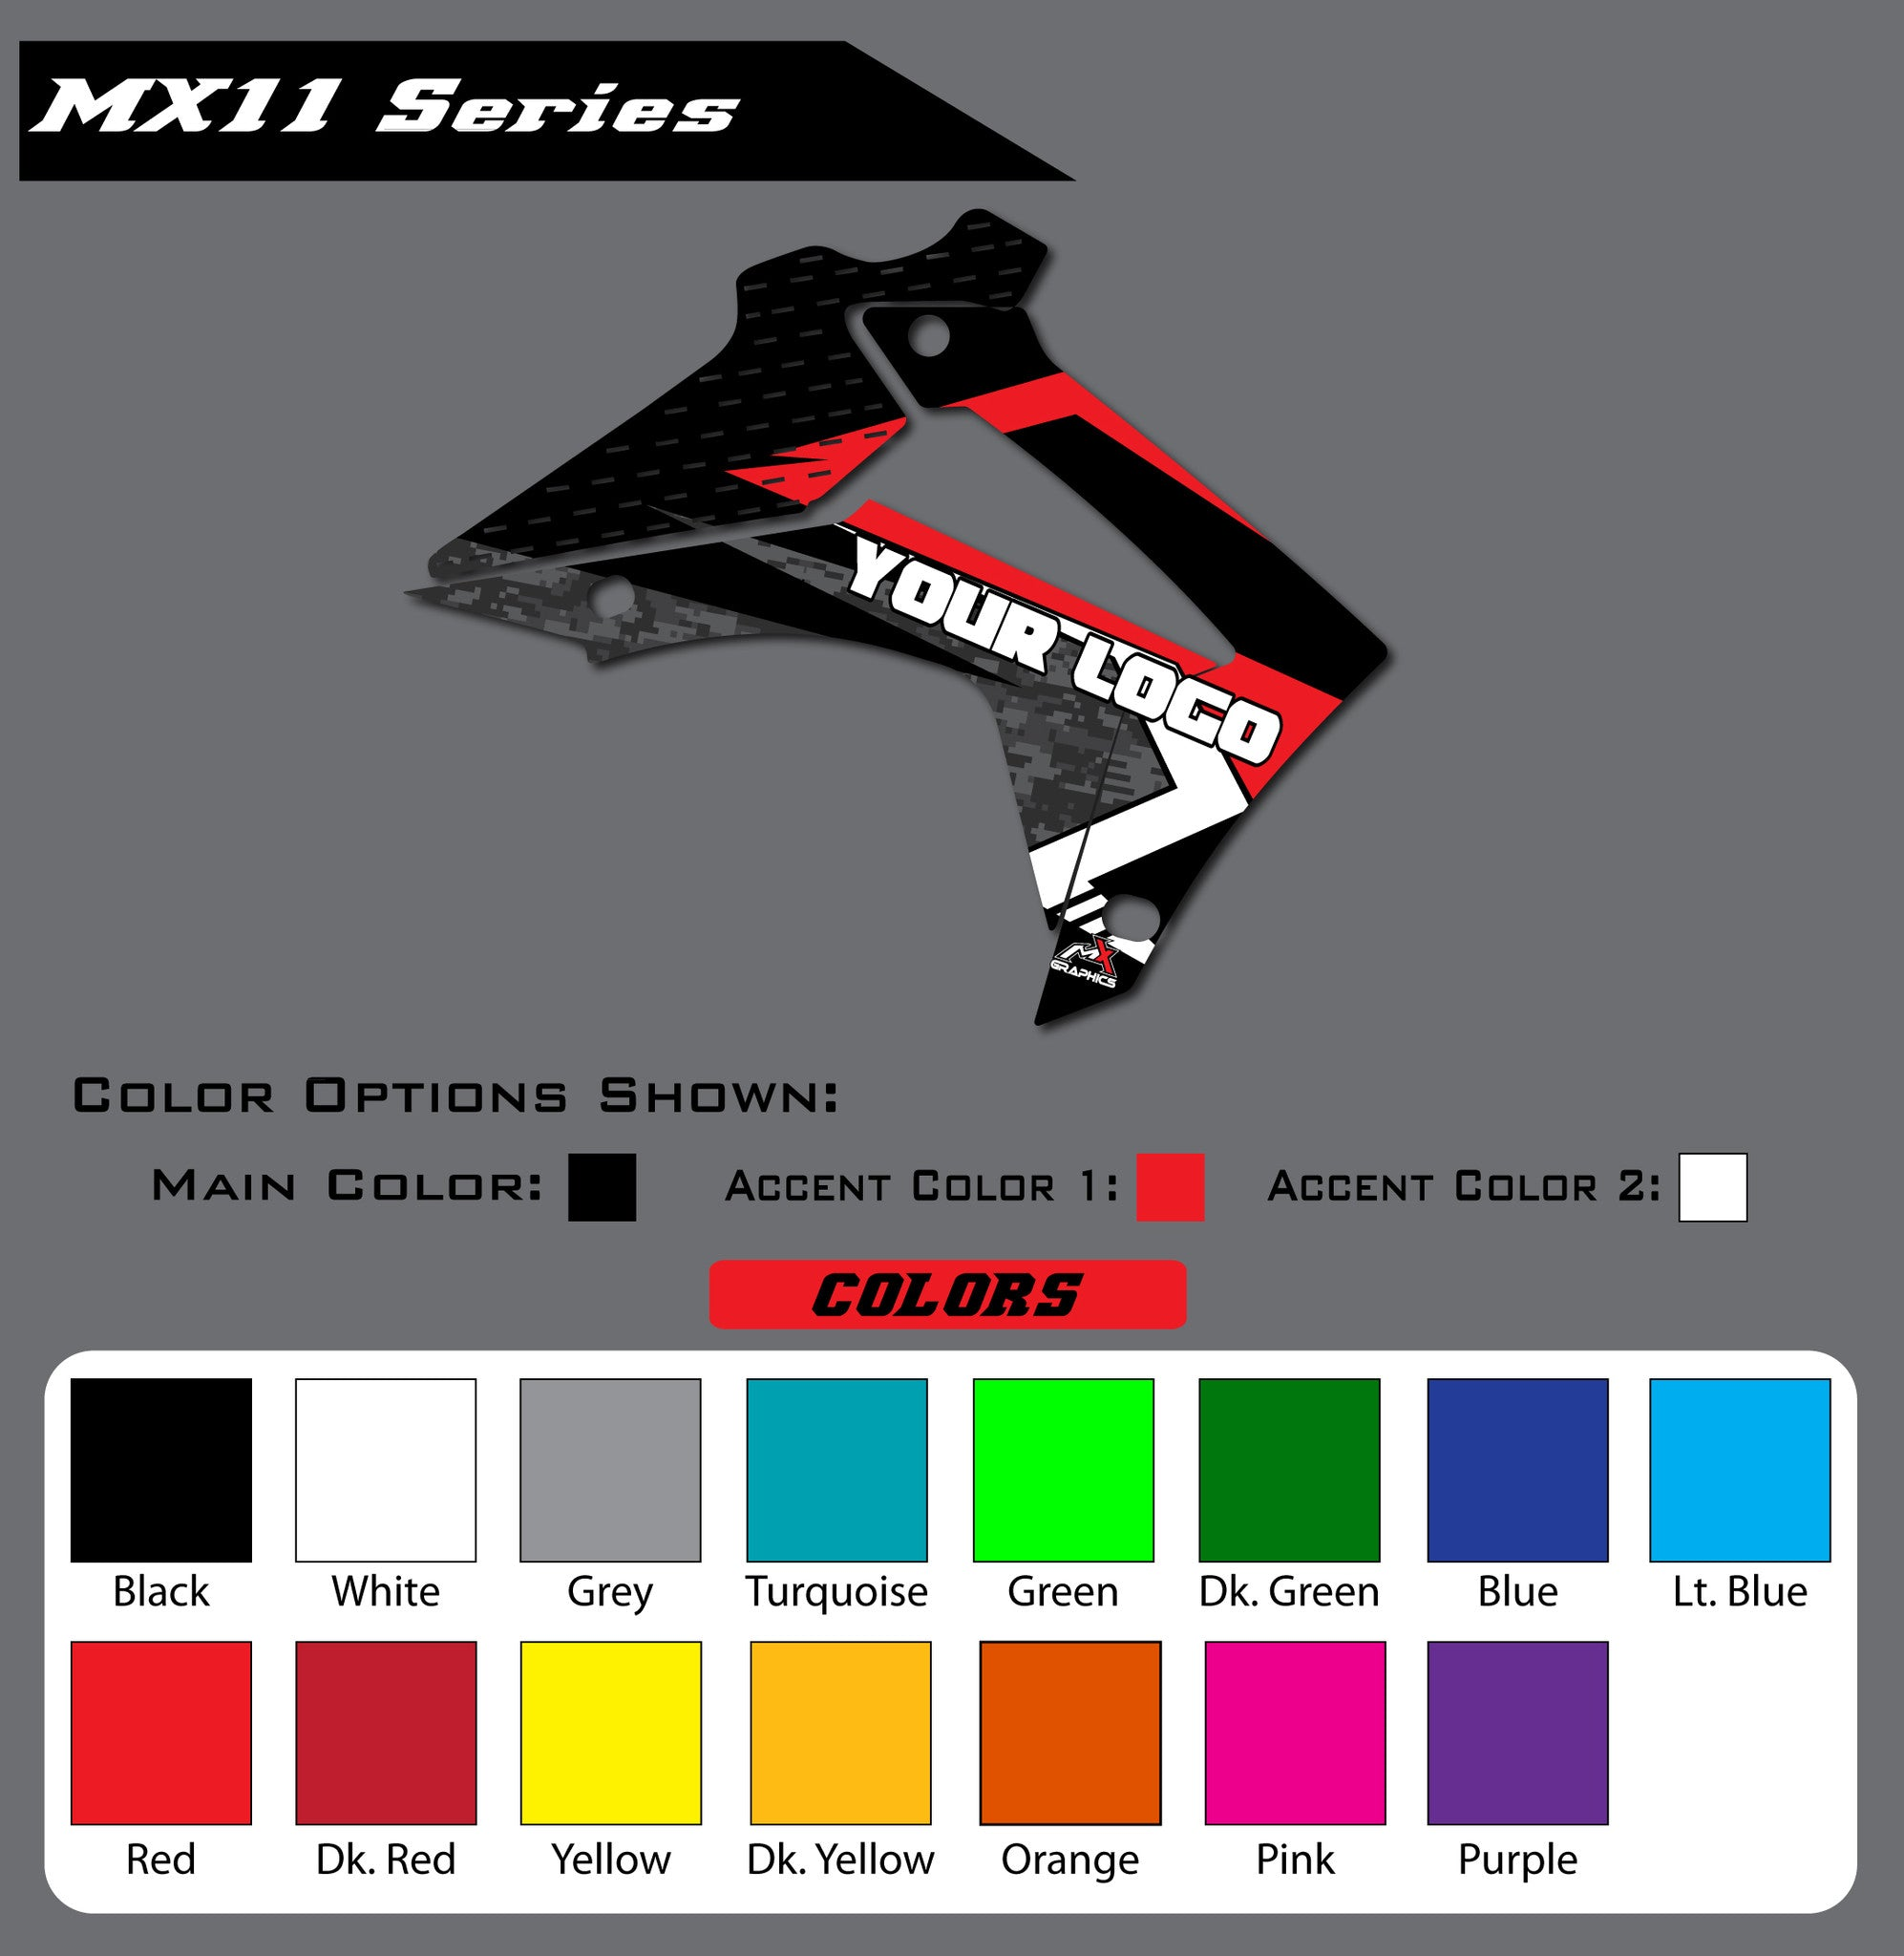 Honda MX11 Shroud Graphics